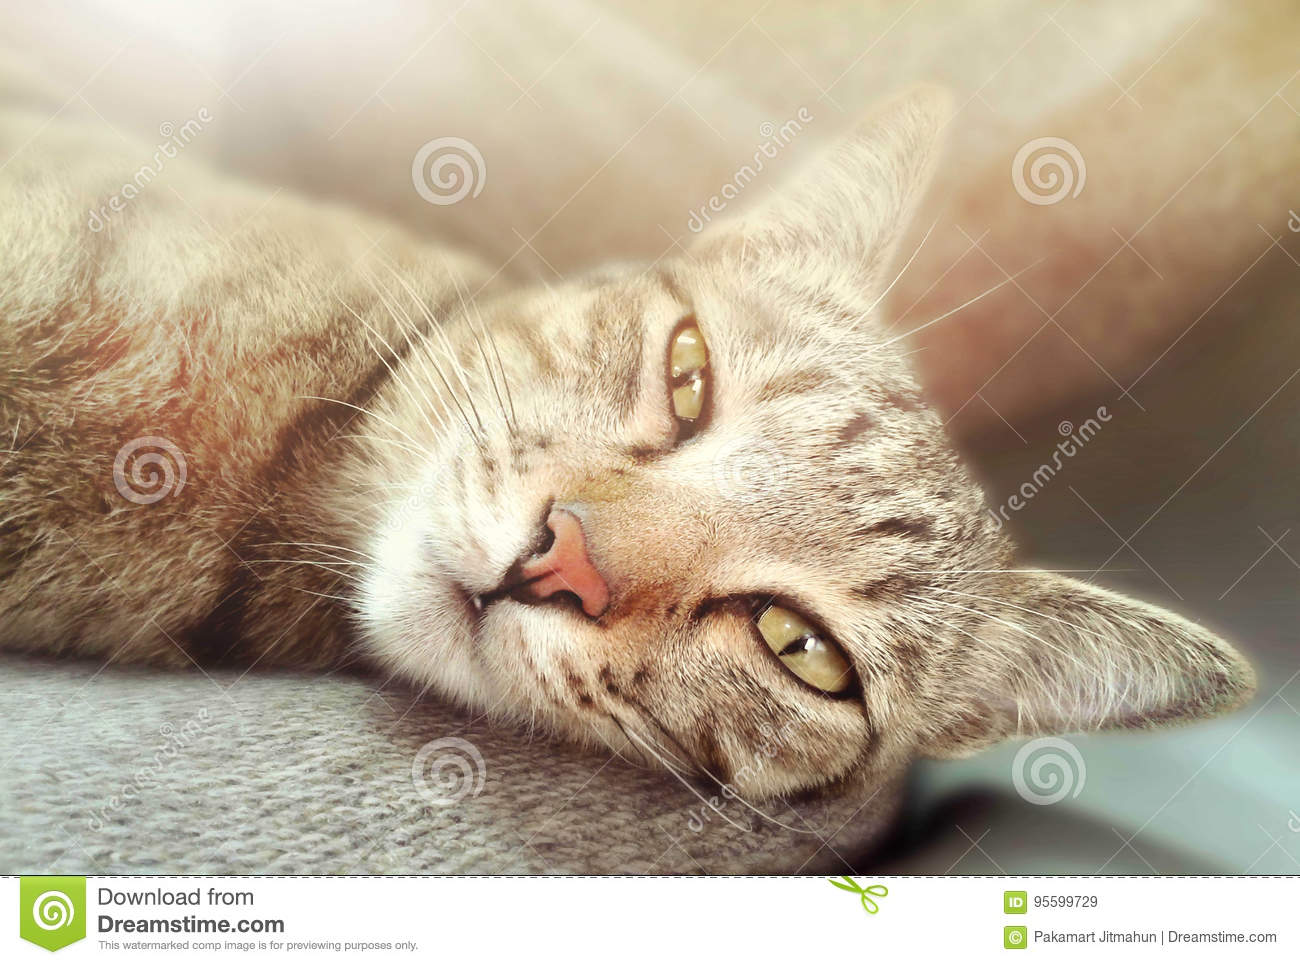 Closeup of cat is laying on gray carpet